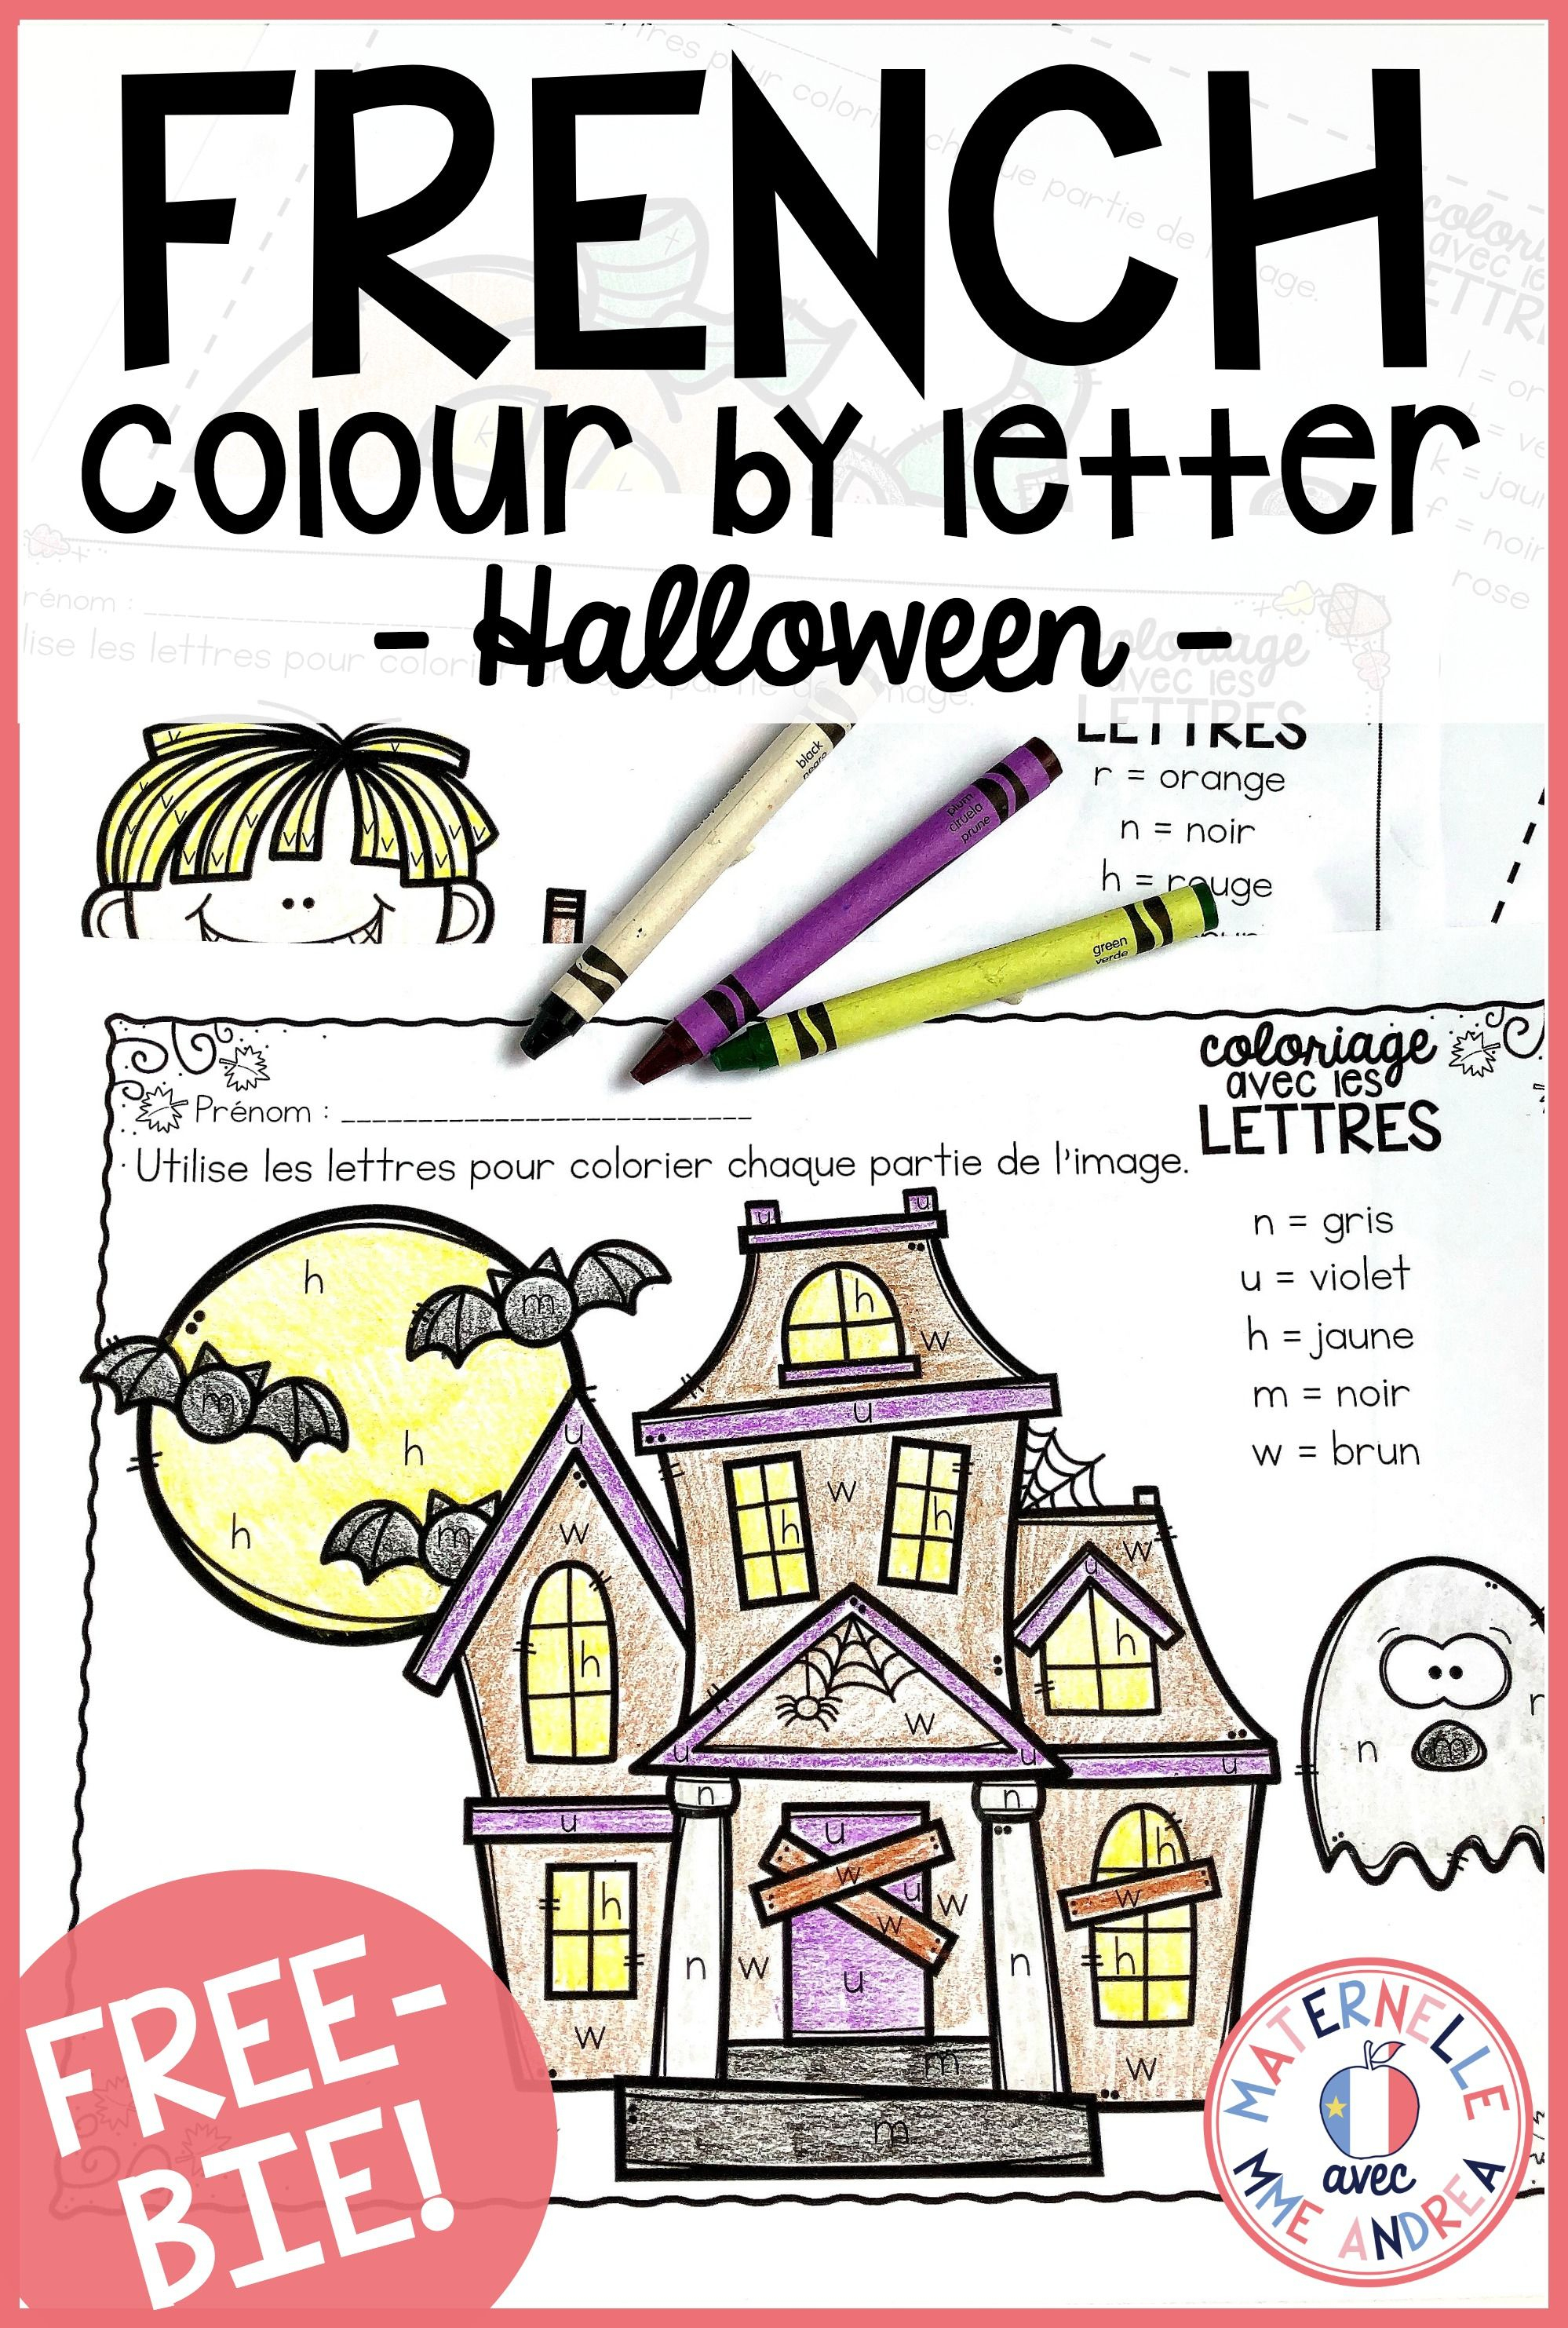 Gratuit! Free French Fall/halloween Colourletter Sheets | France - Free Printable French Halloween Worksheets